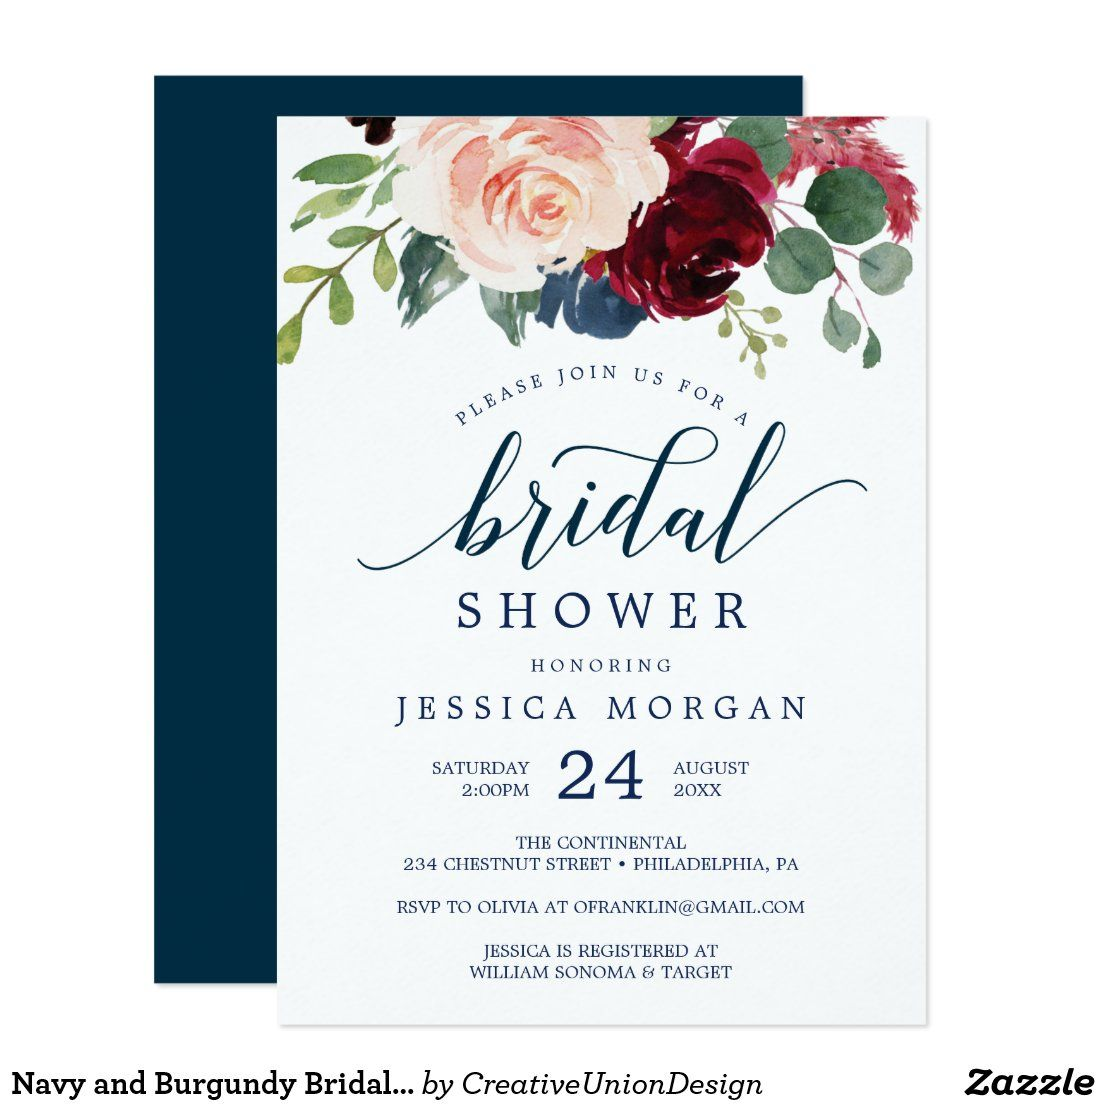 Navy and Burgundy Bridal Shower Invites in